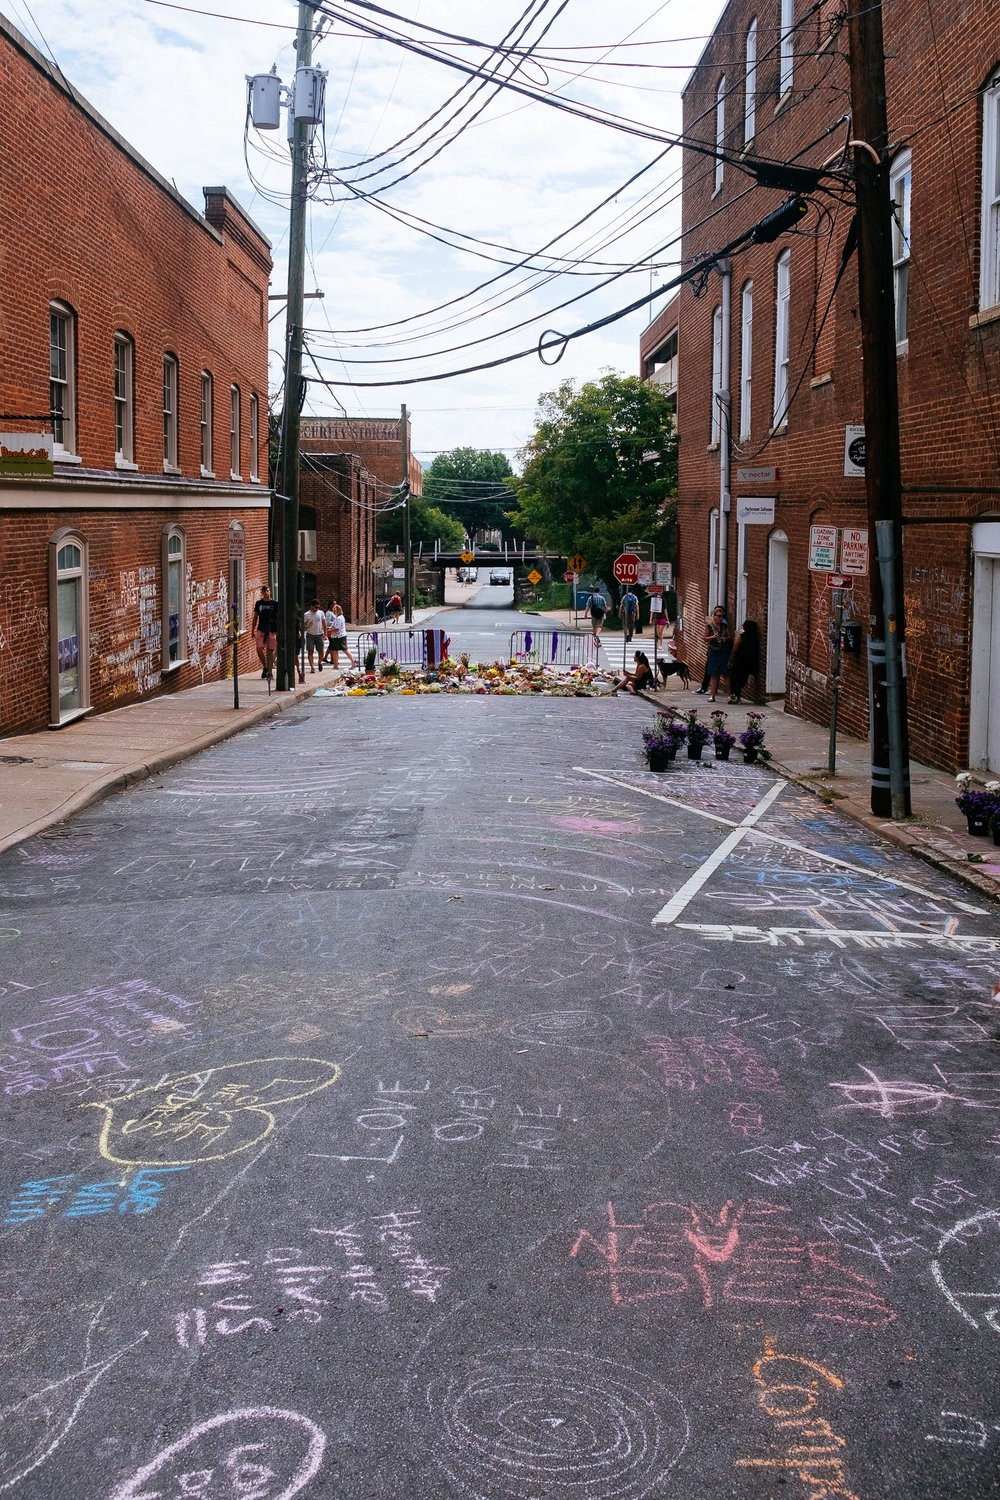 The sad scene of Heather Herrer's Death in Charlottesville, VA. We returned the next day and the rain had washed this away, but the next day another box of chalk was placed at the site.